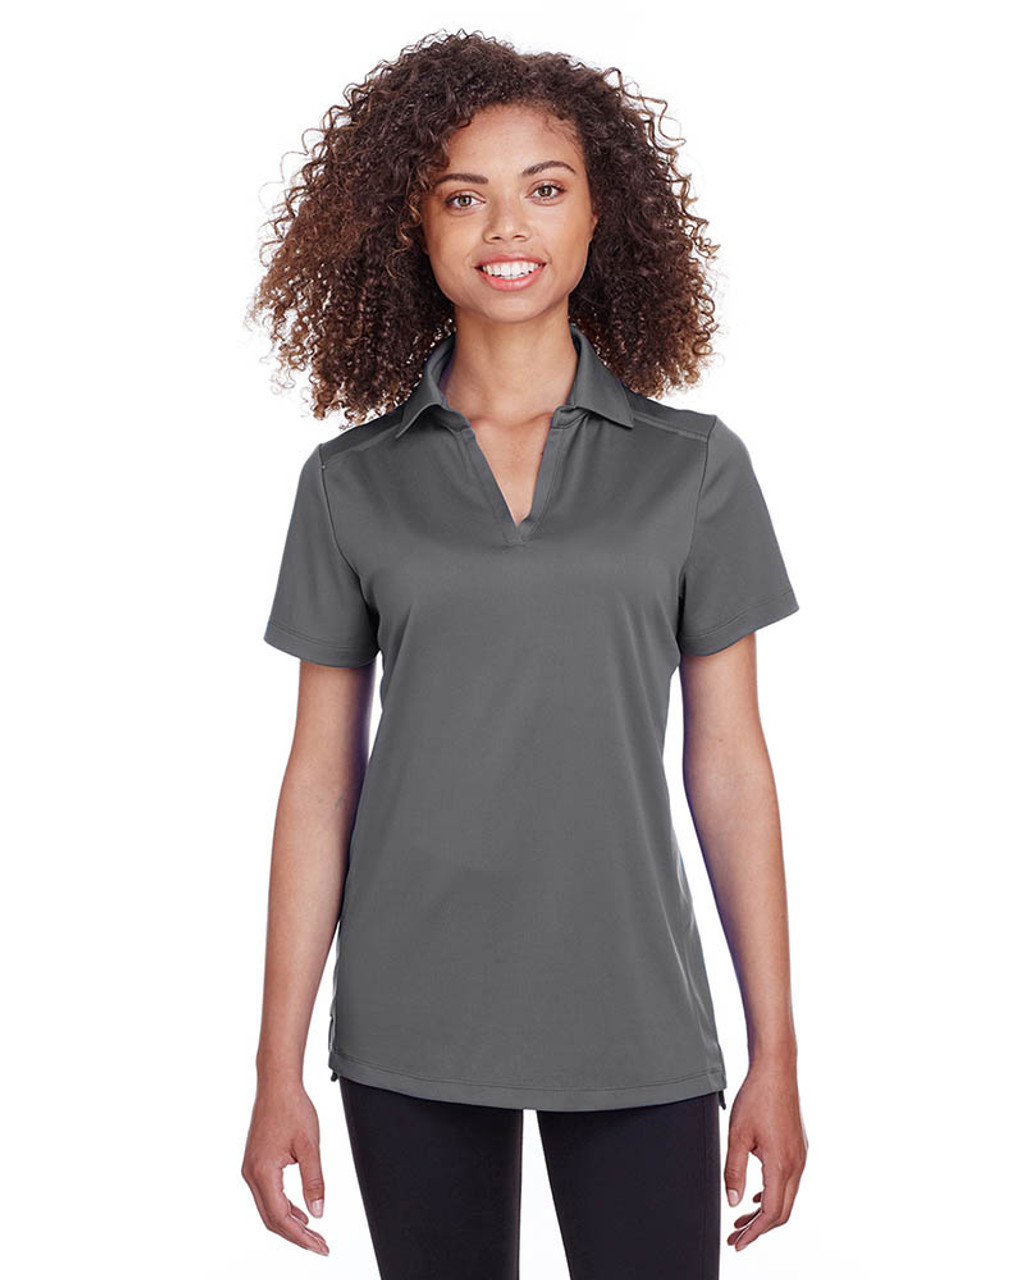 Polar - S16519 Spyder Ladies' Freestyle Polo | BlankClothing.ca